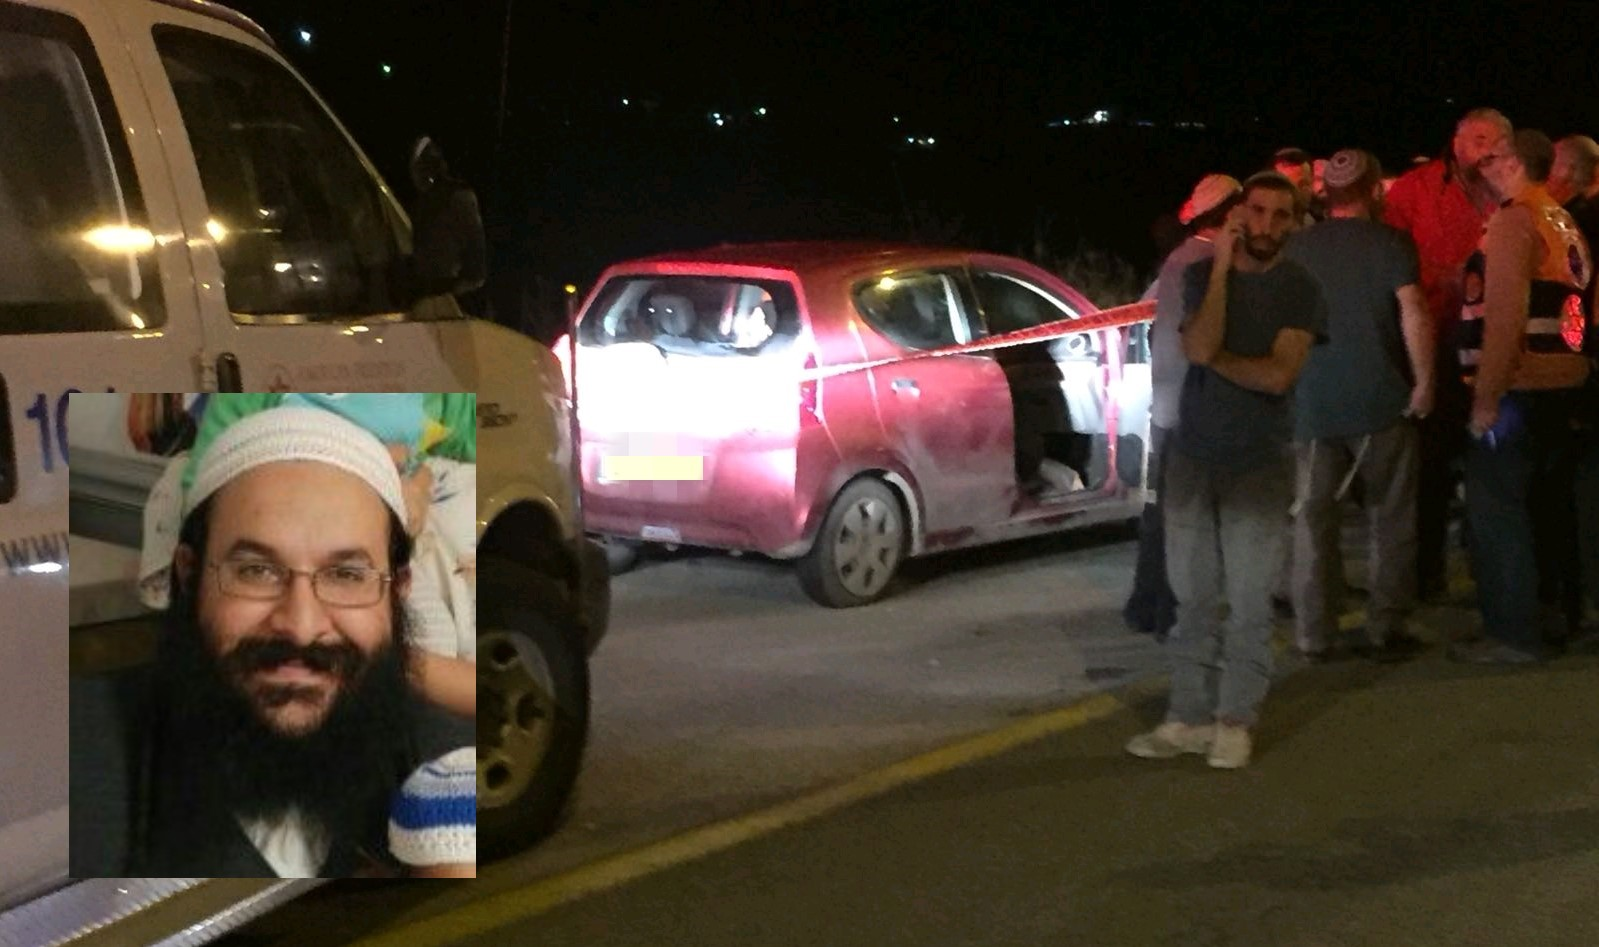 Israelis Call for Revenge After Fatal Drive-by Shooting of Settler